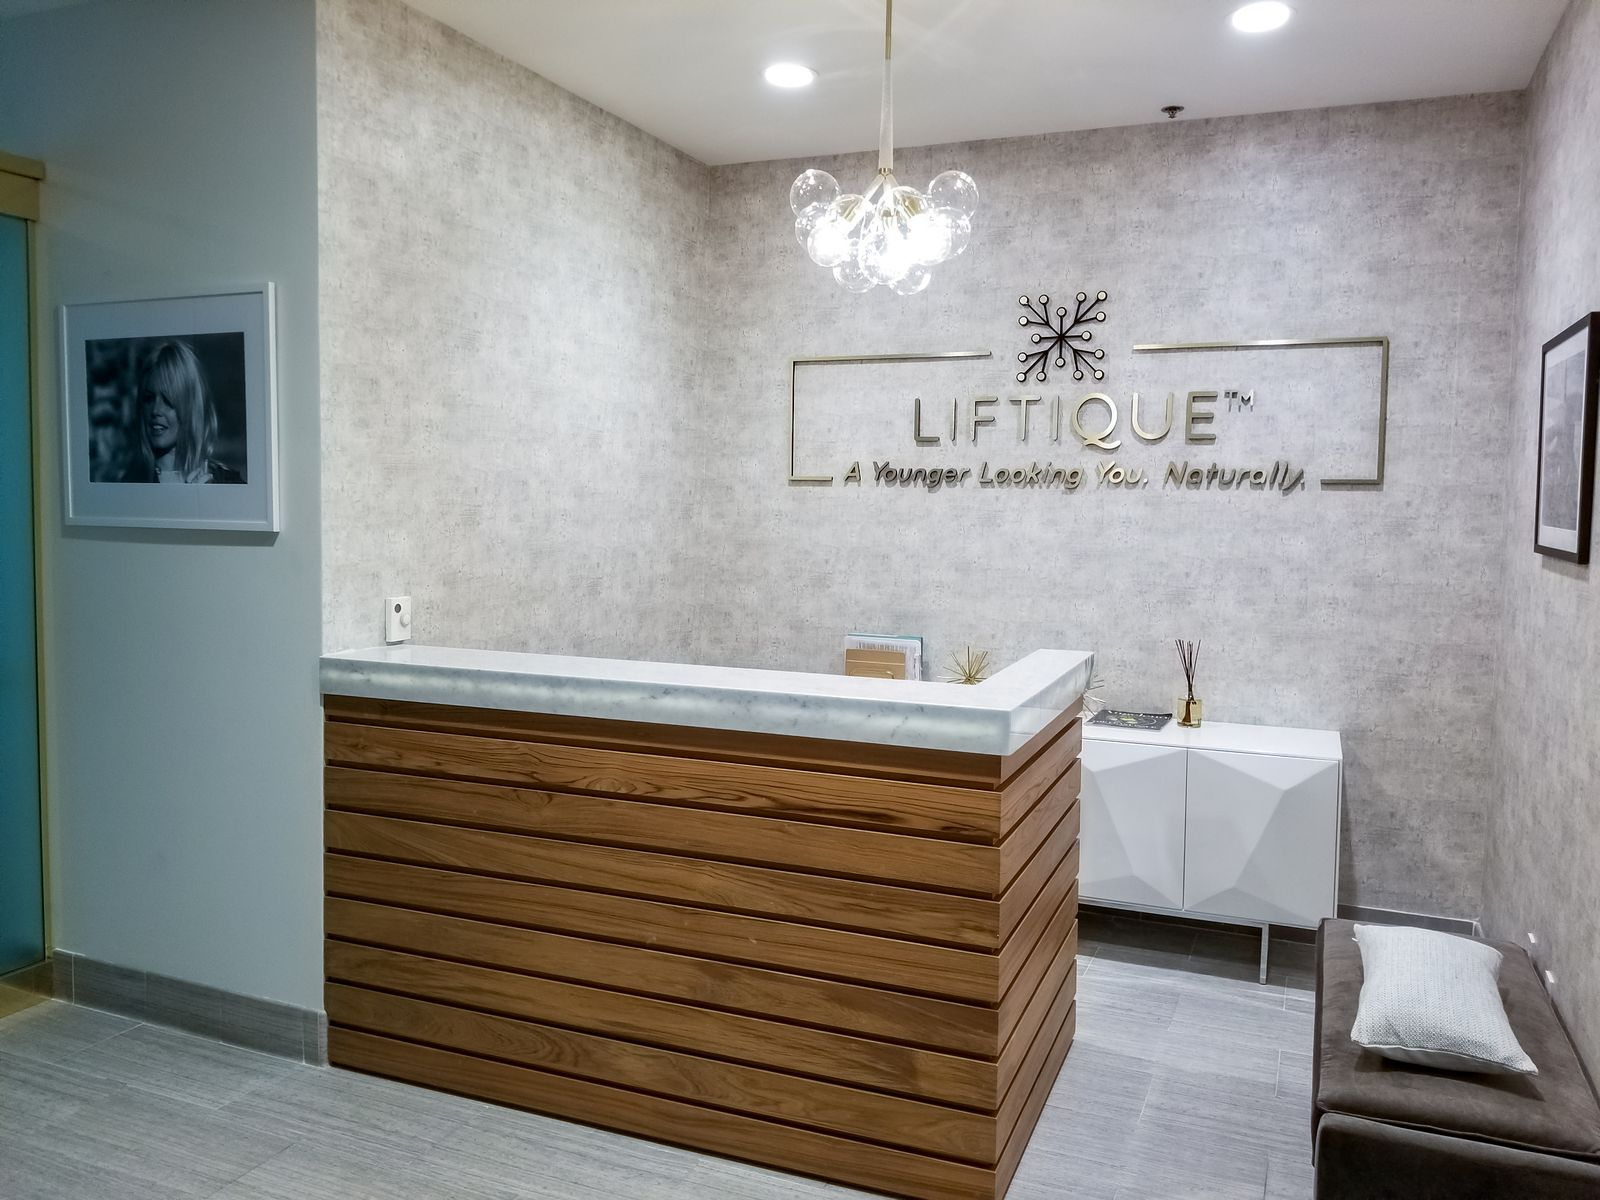 Liftique Clinic reception logo sign and slogan made of aluminum and acrylic